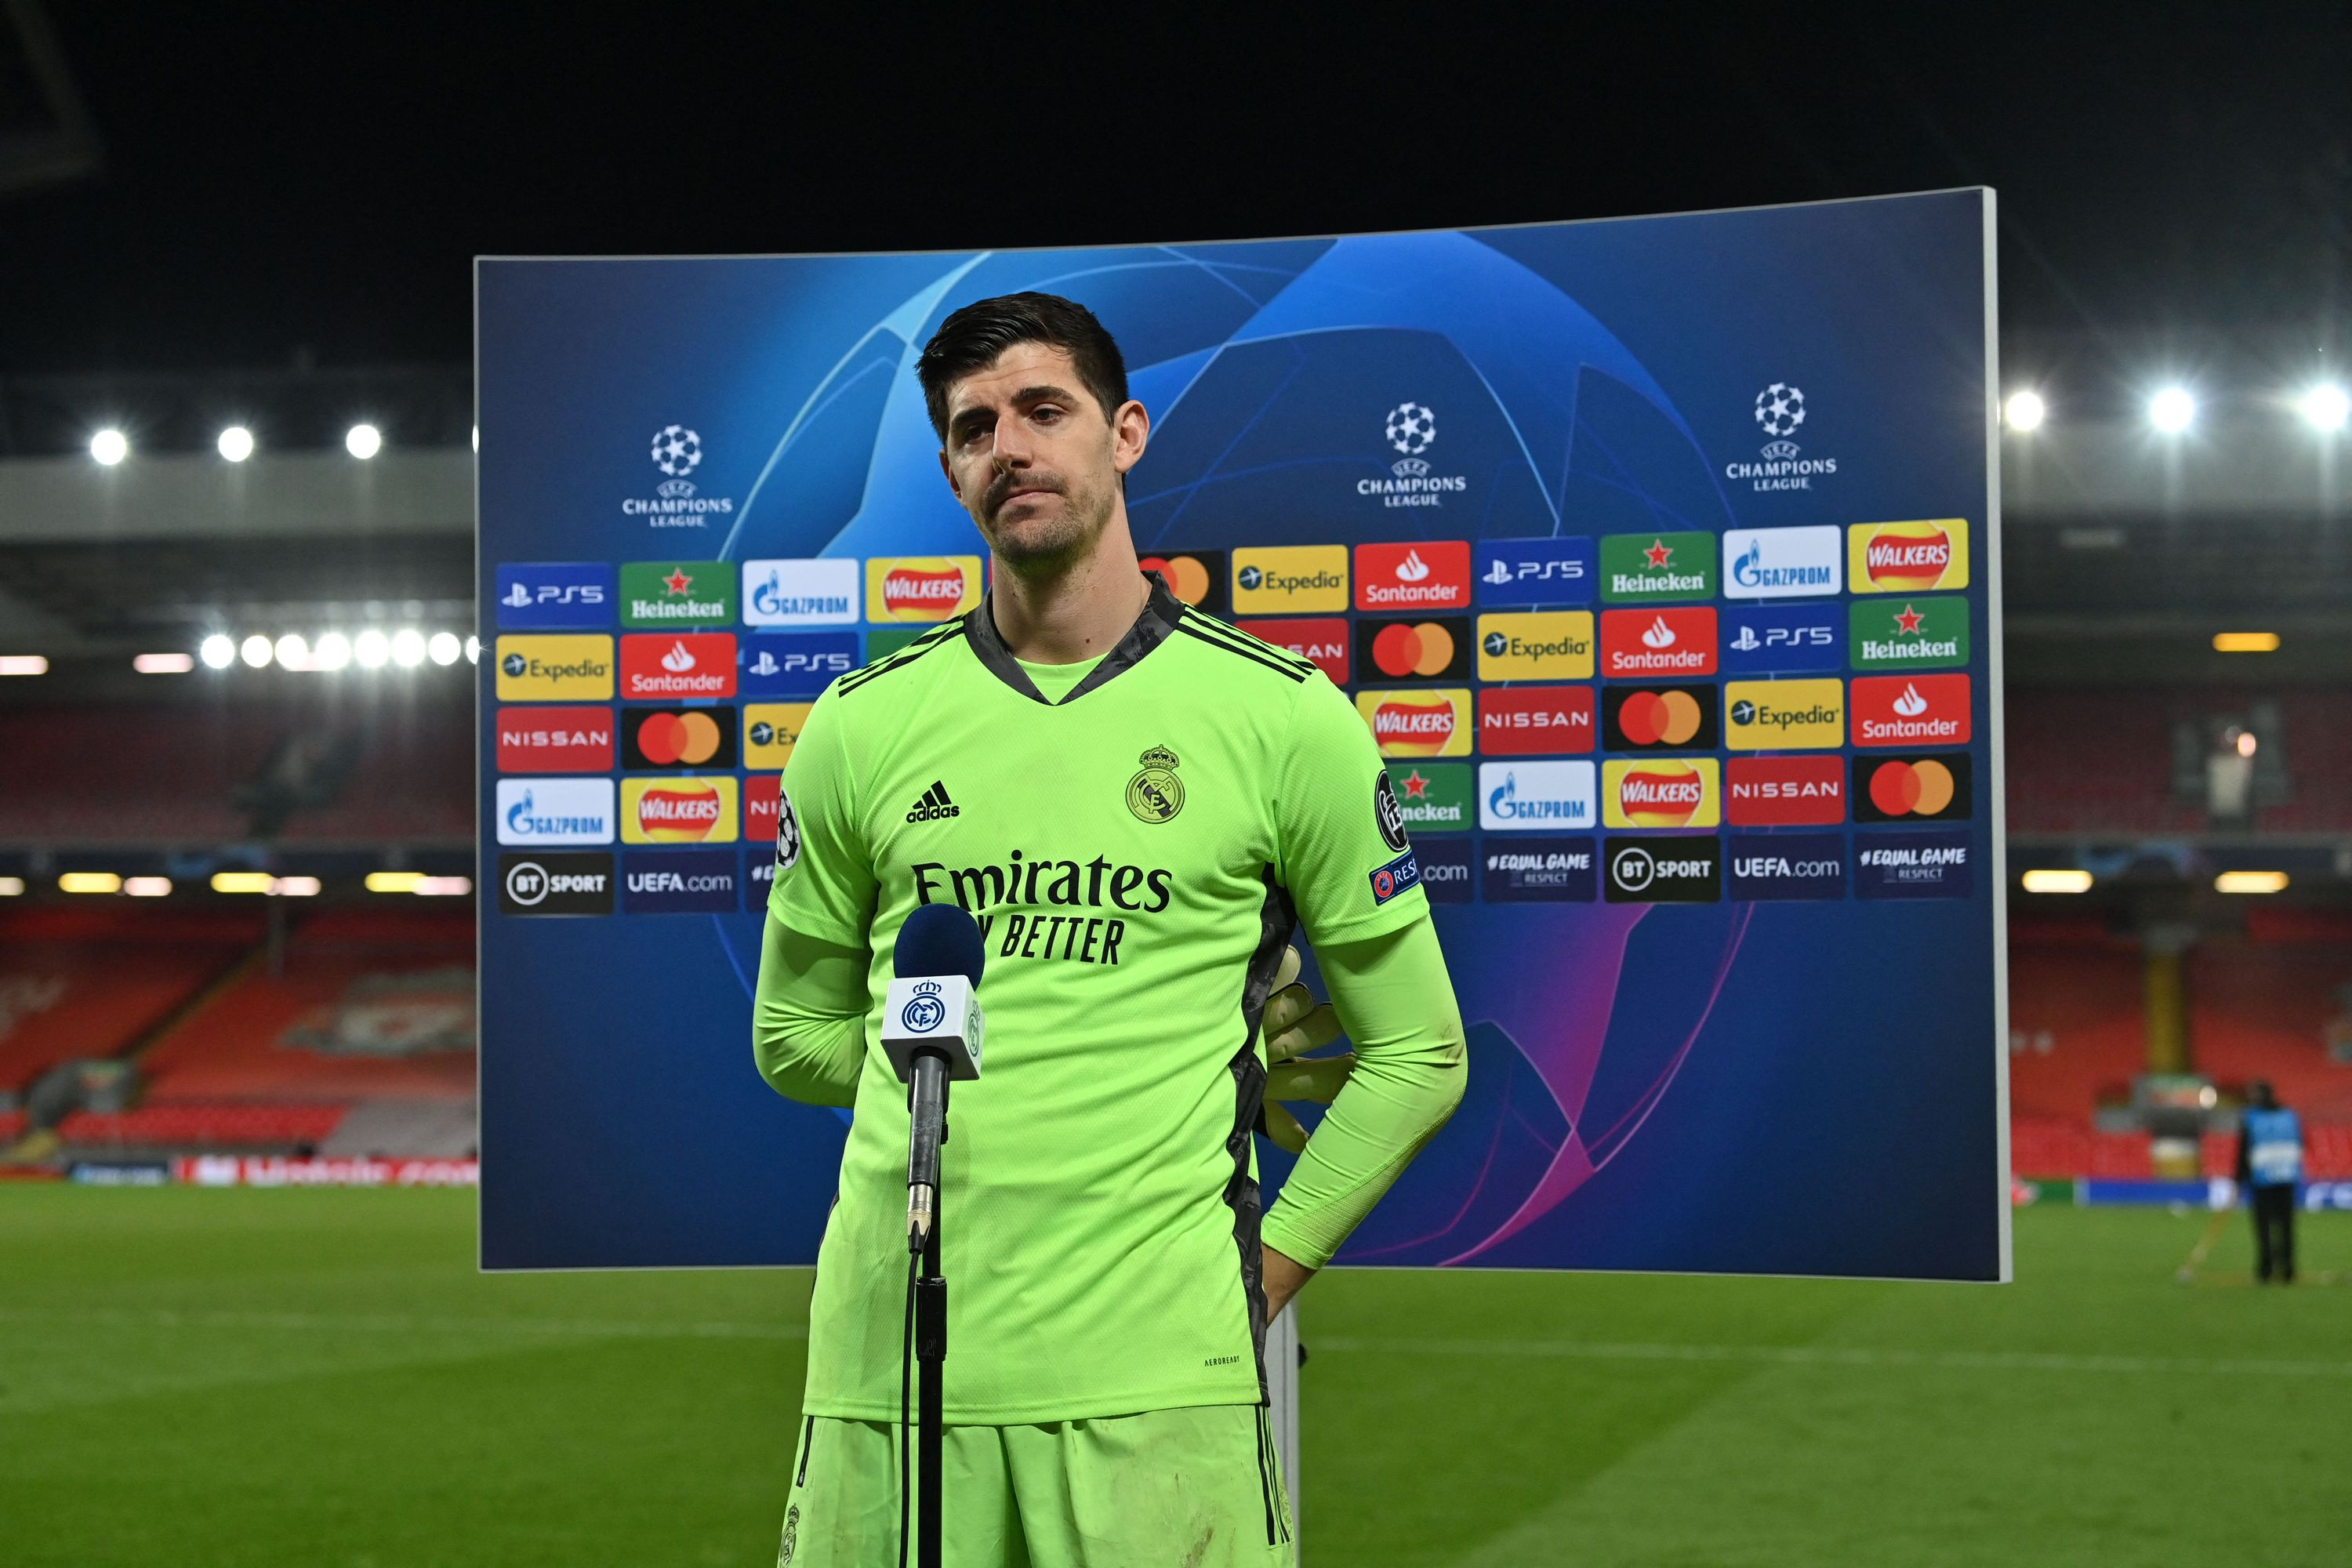 Thibaut Courtois sends message to the Chelsea fans ahead of Champions League reunion